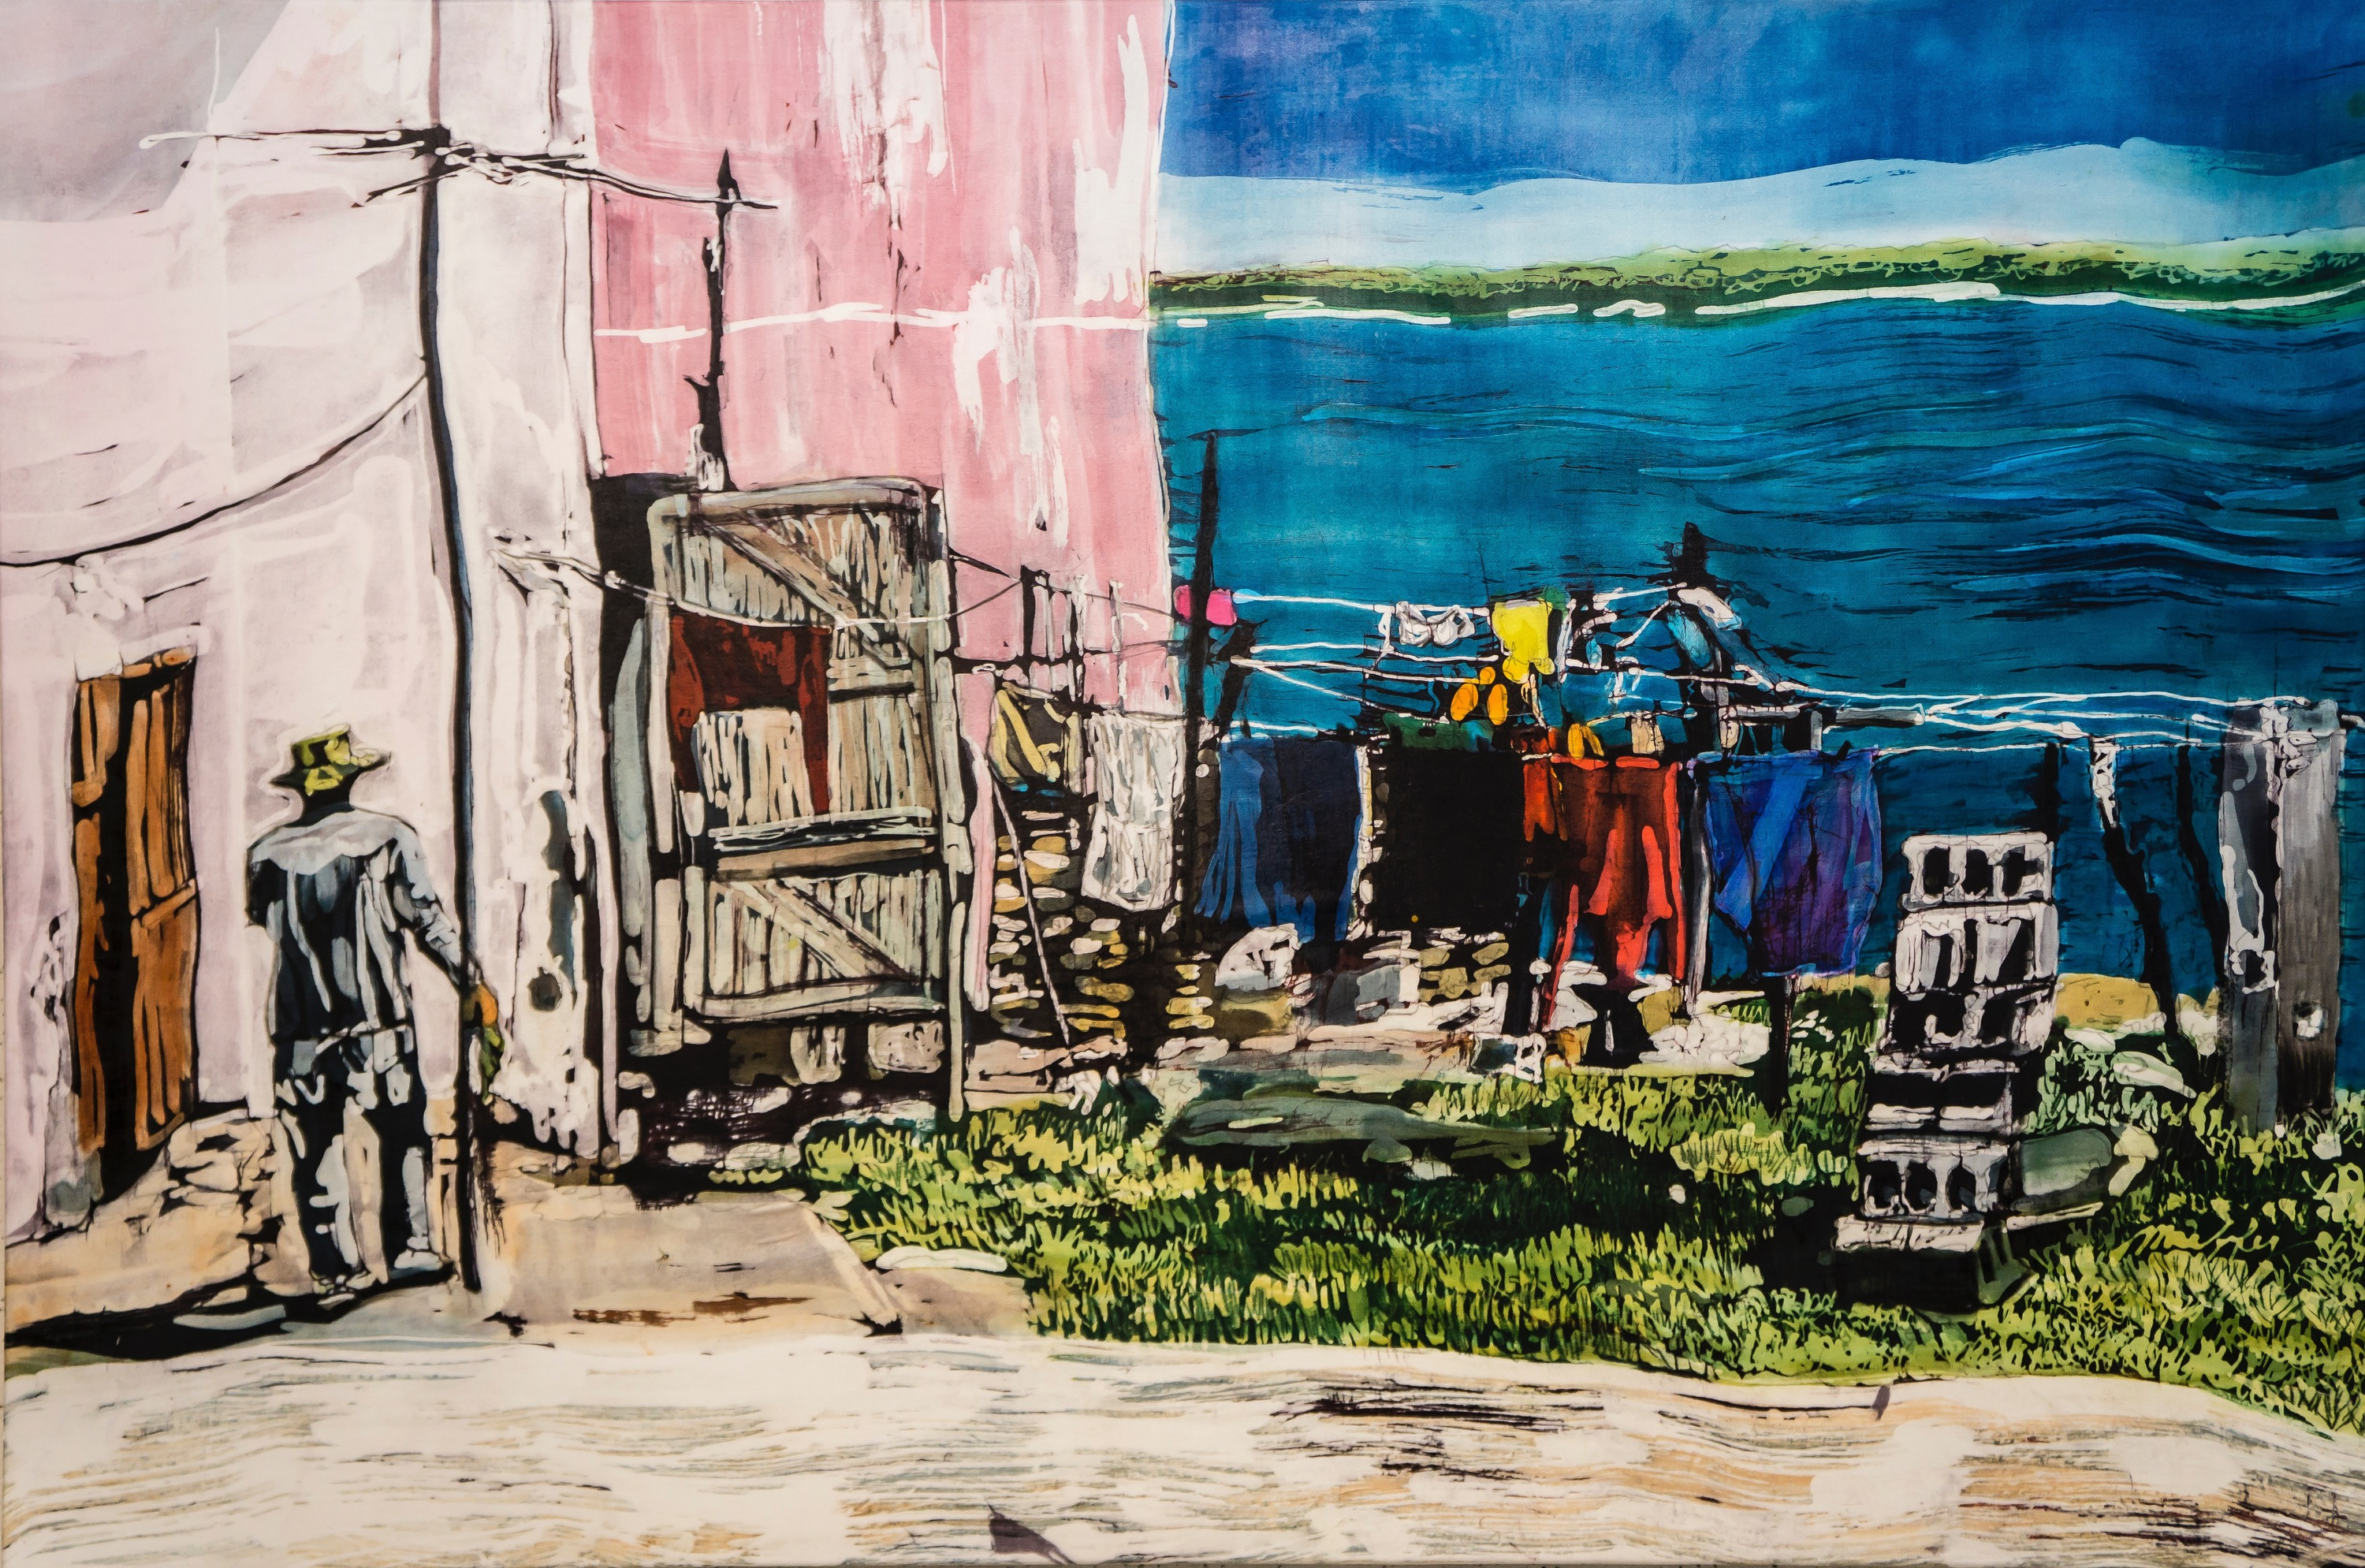 Mcg 166 muffy clark gill wash day gibara bay  rozome on silk 24 x 36 in o9kscp